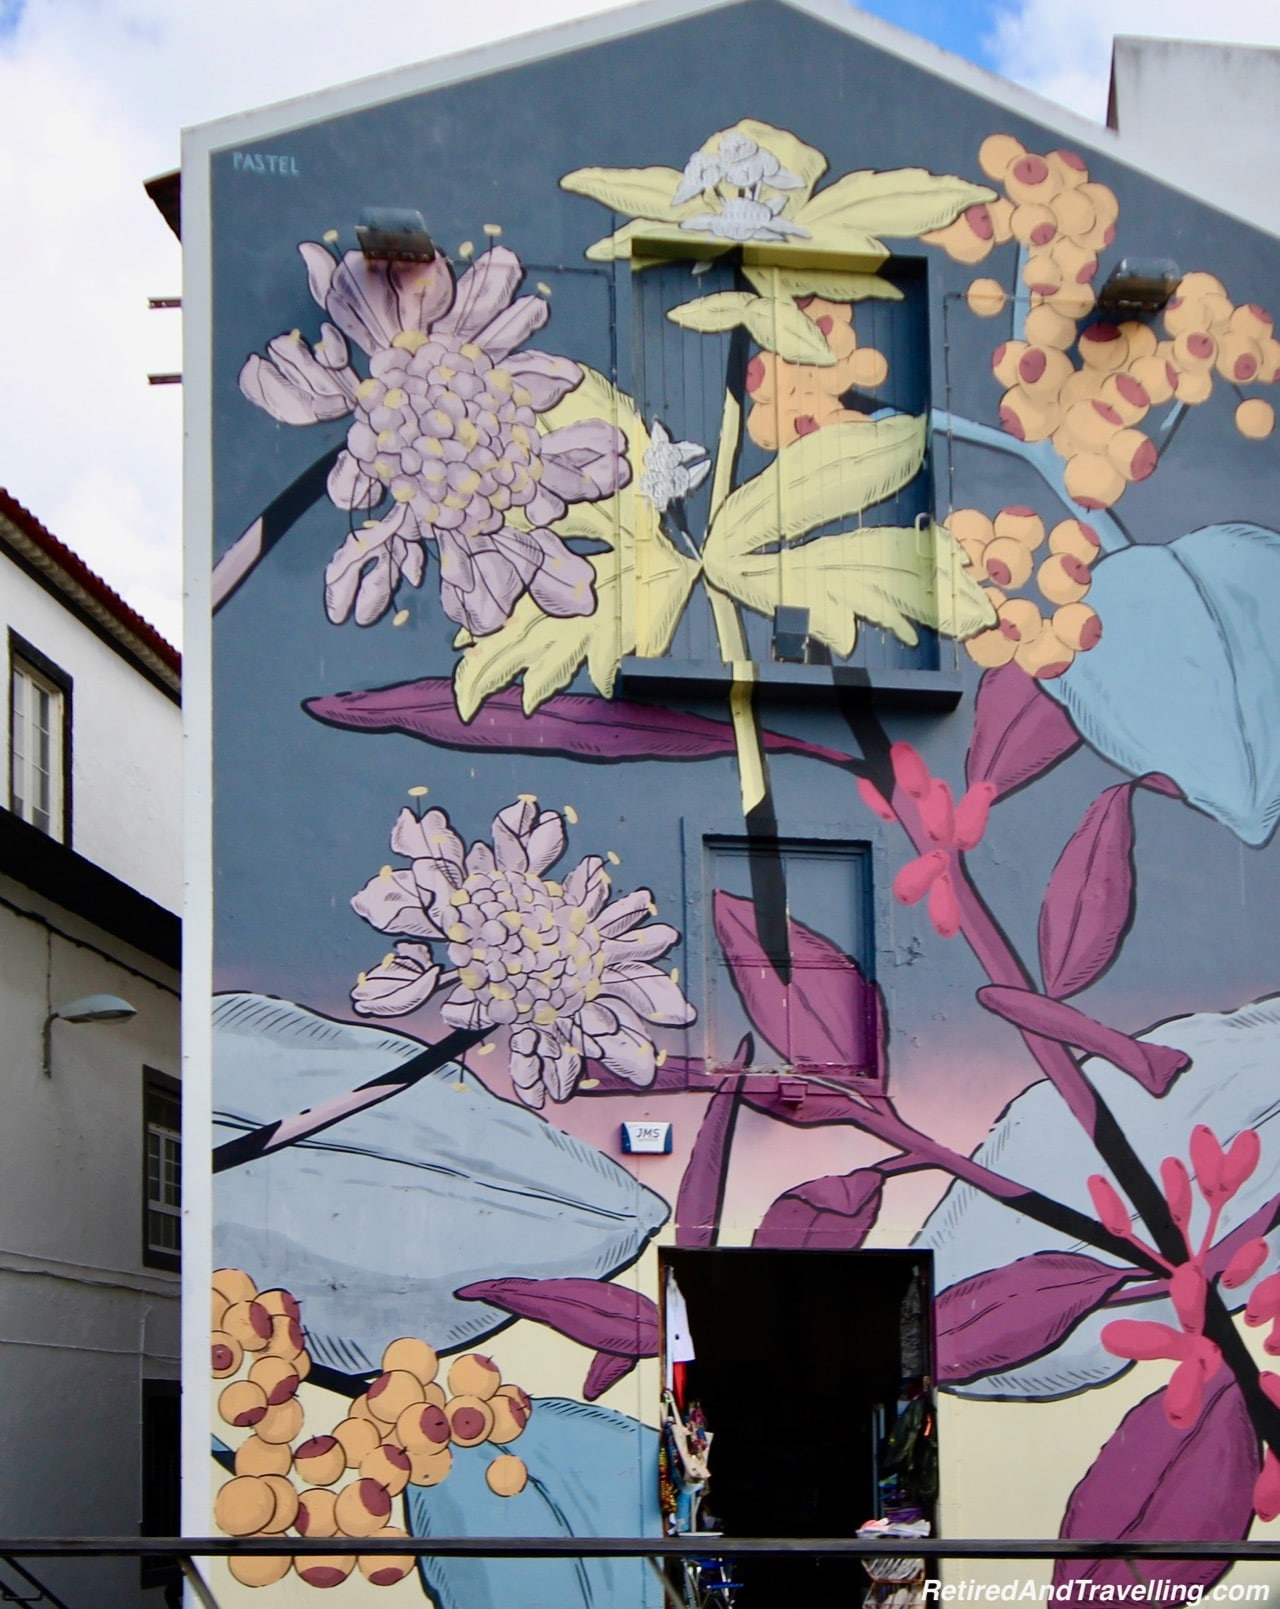 Azores Street Art - 10 Days In the Azores.jpg